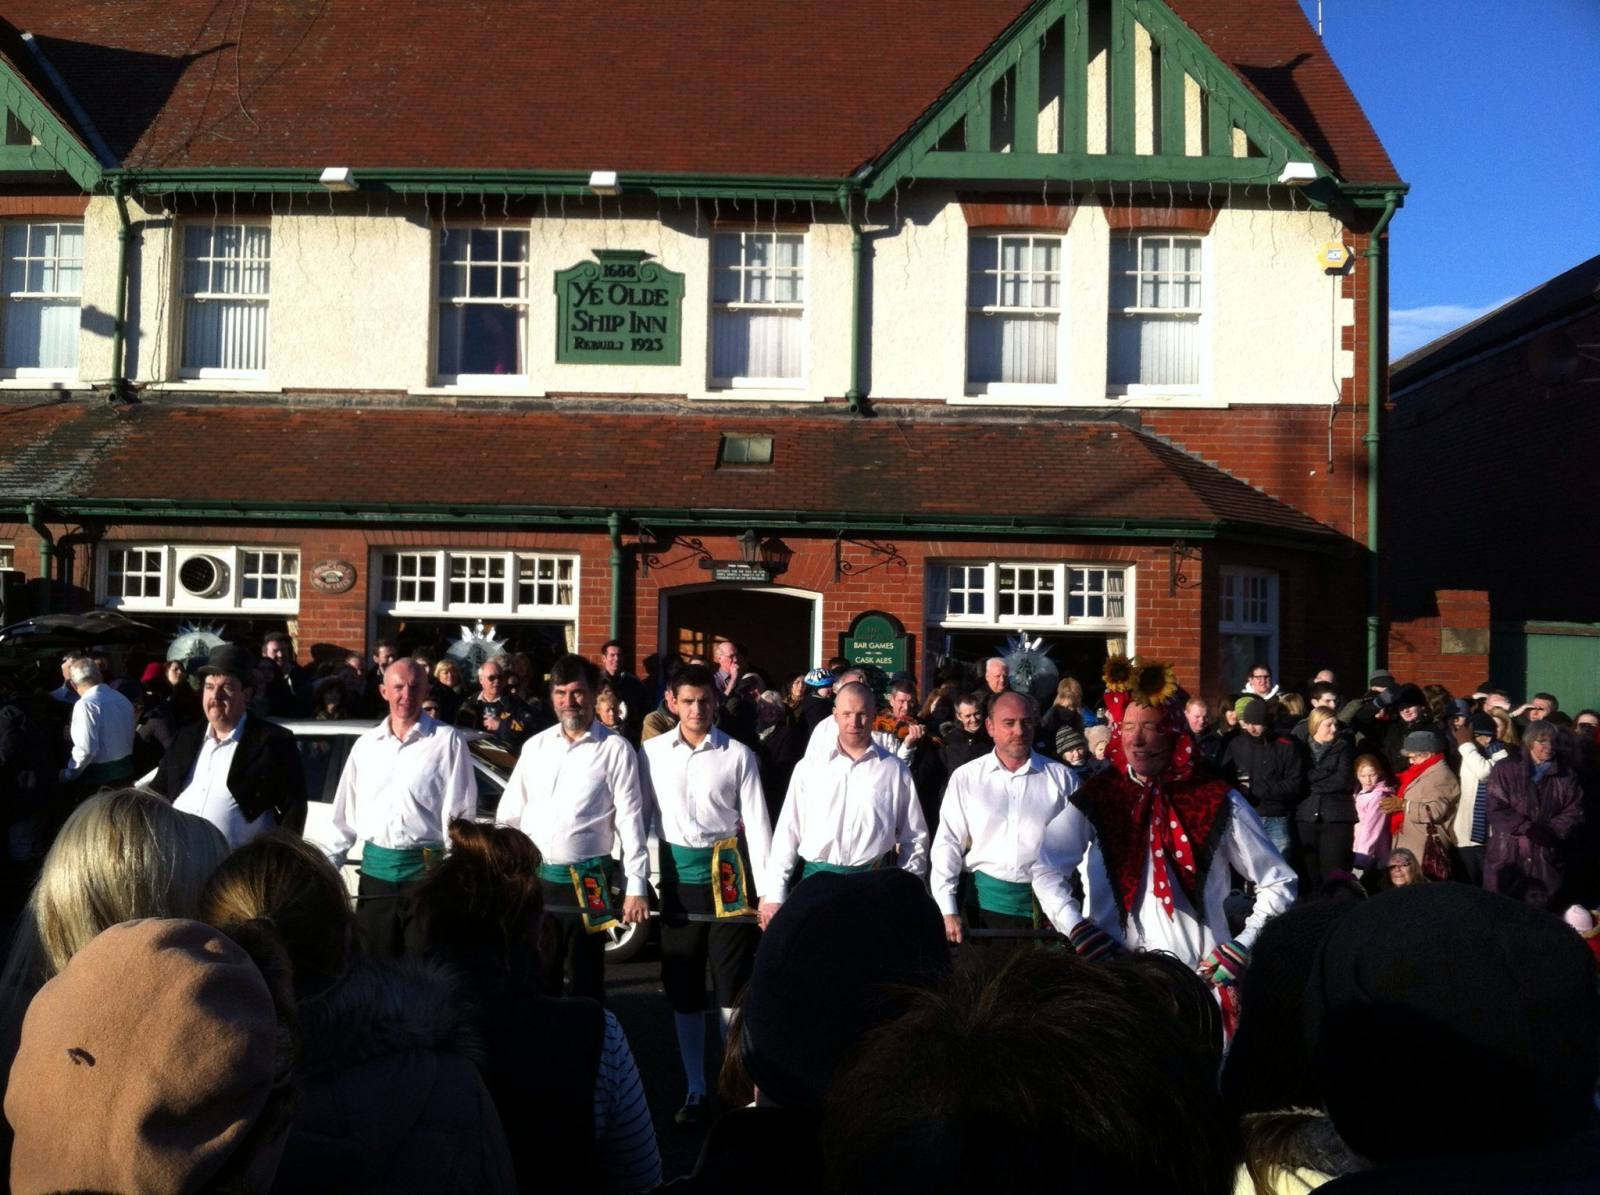 morris men monkseaton new years day ship inn